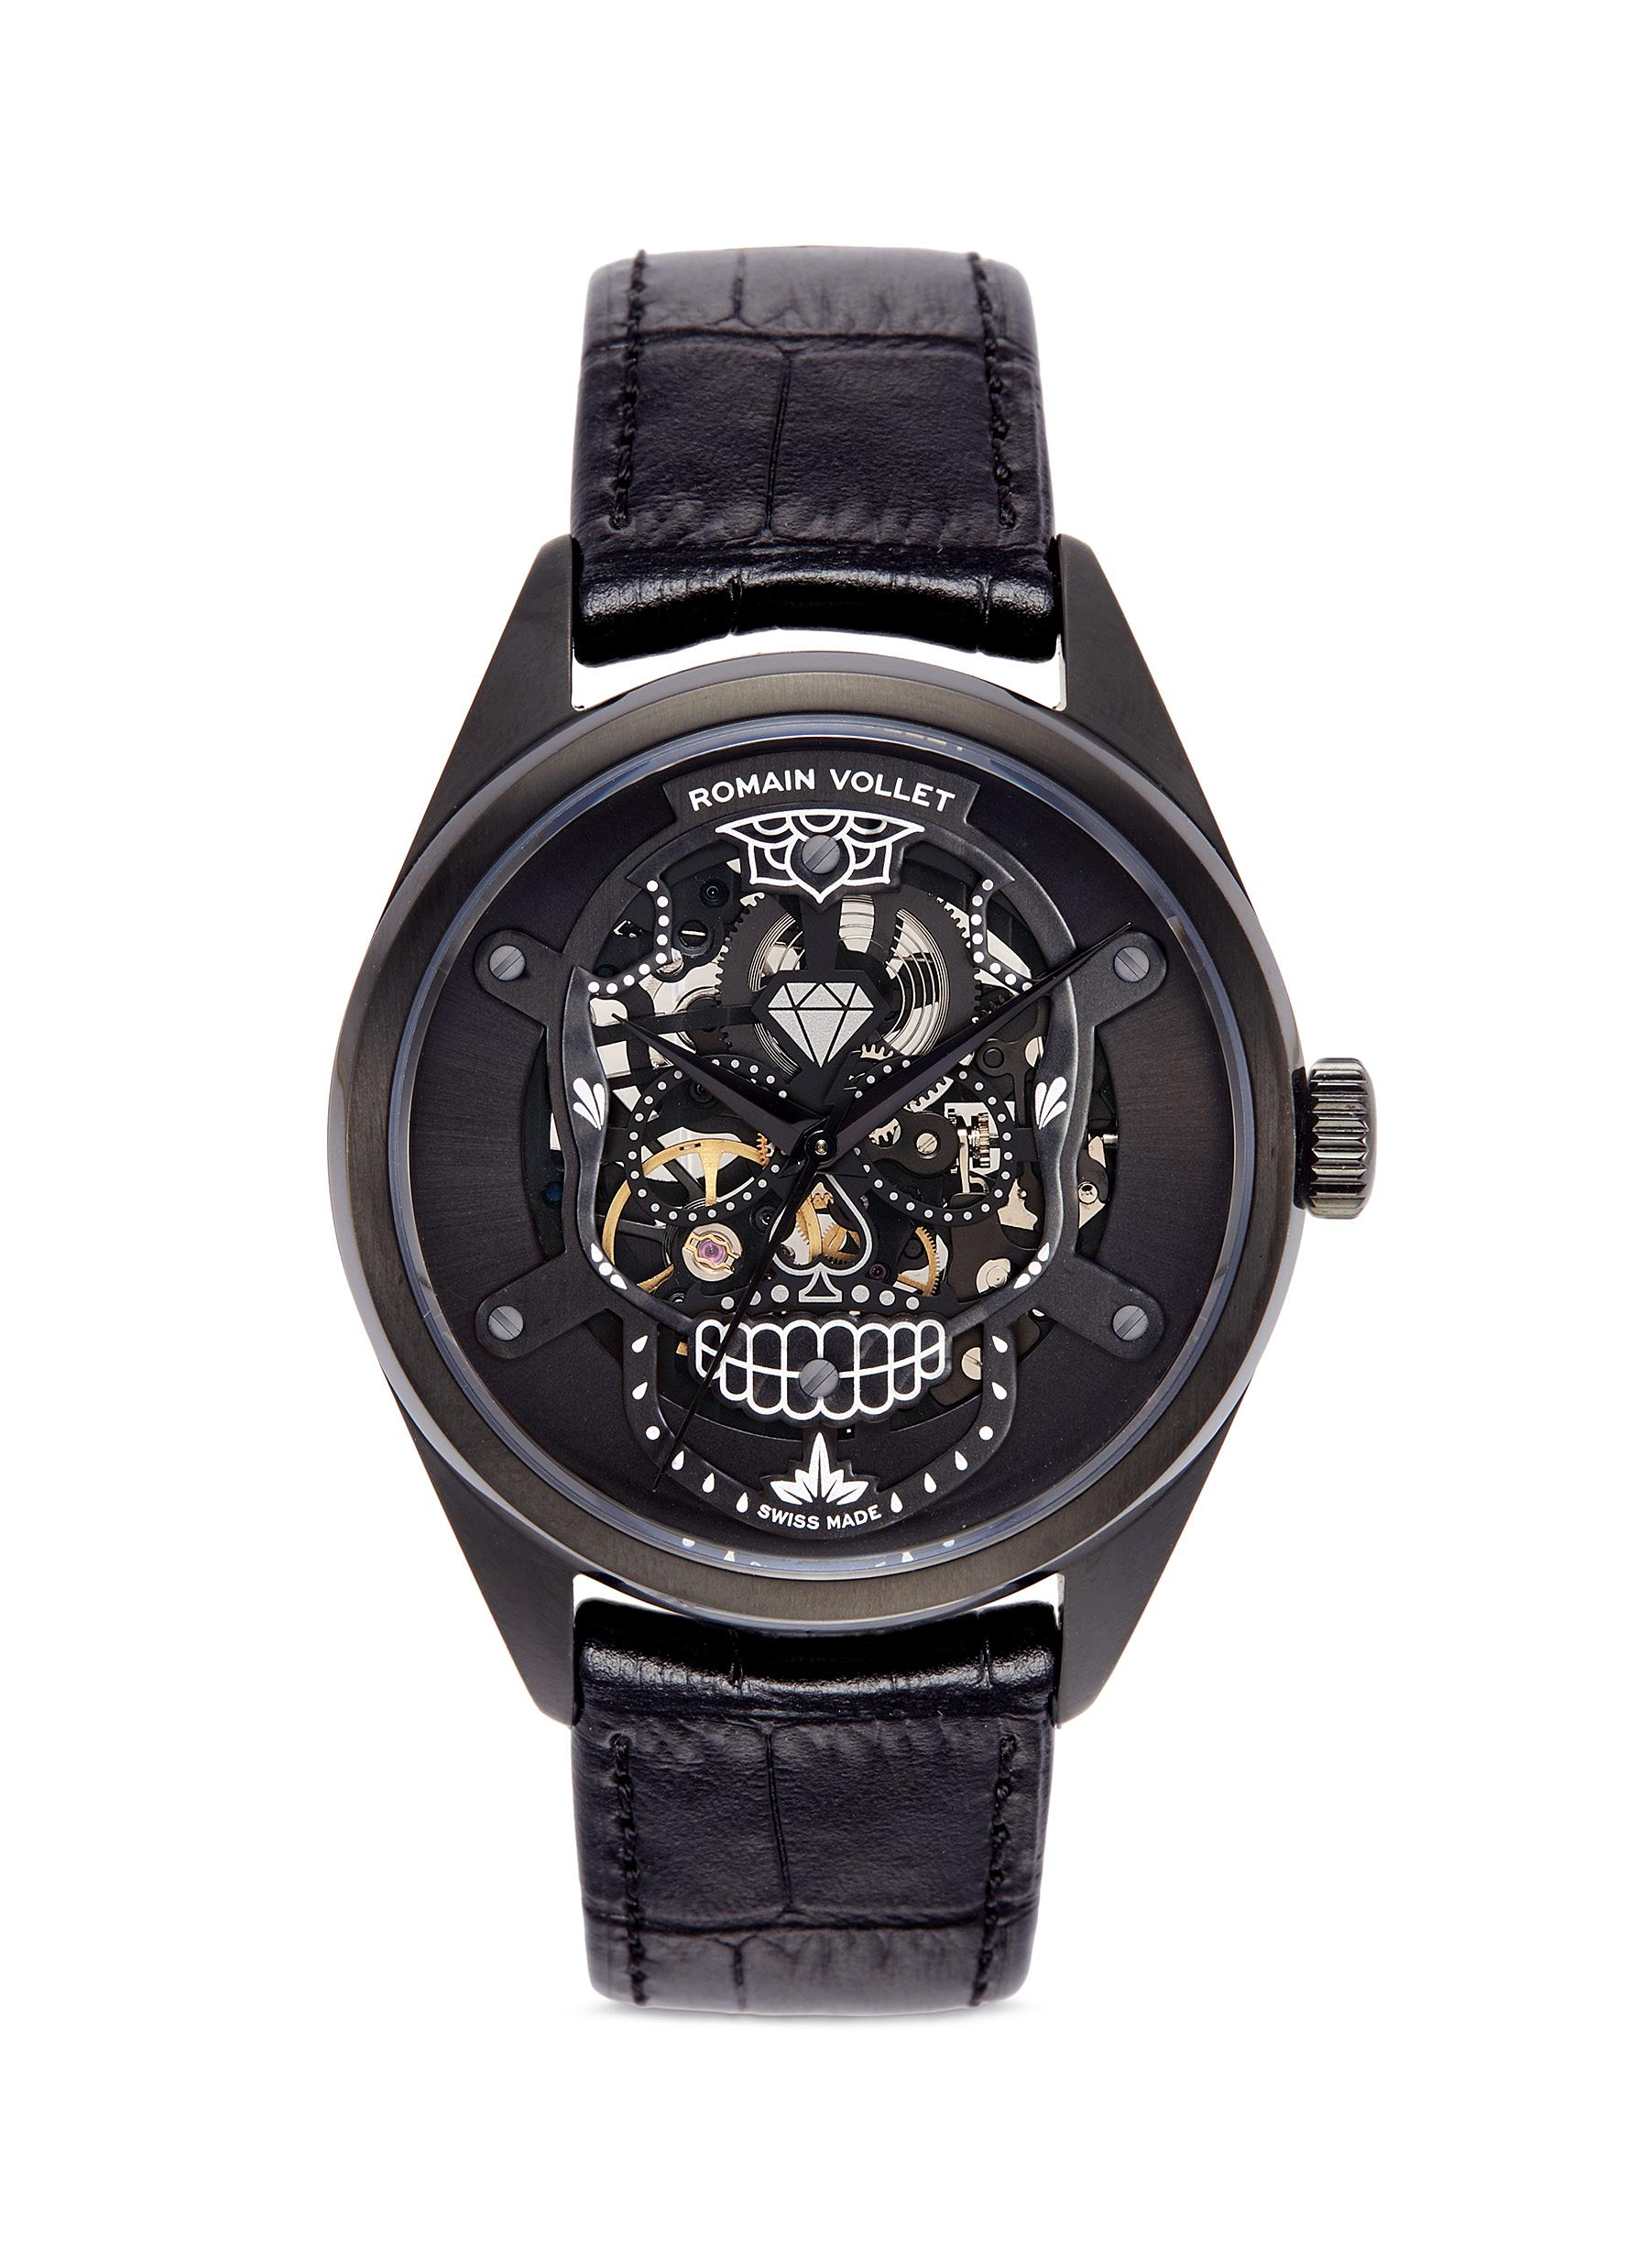 romain vollet male motor skull 555 deepblack skeleton watch